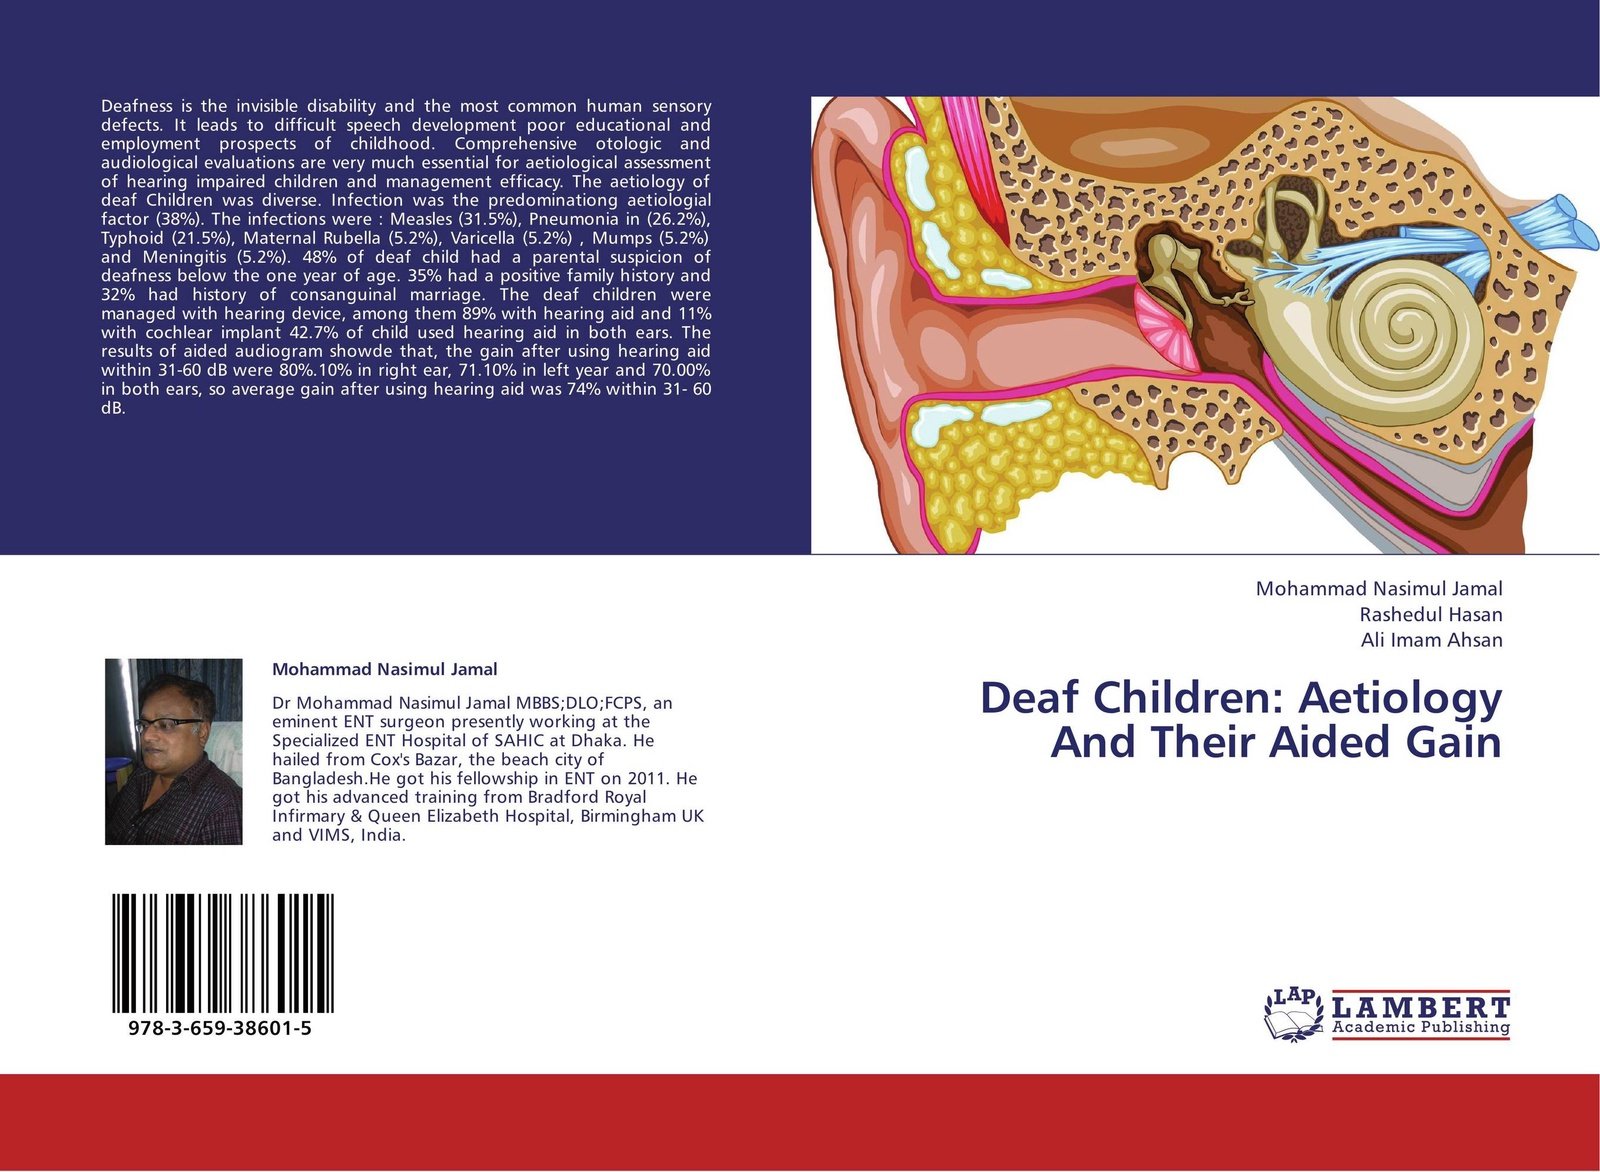 Mohammad Nasimul Jamal,Rashedul Hasan and Ali Imam Ahsan Deaf Children: Aetiology And Their Aided Gain alphard deaf bonce db t35neo